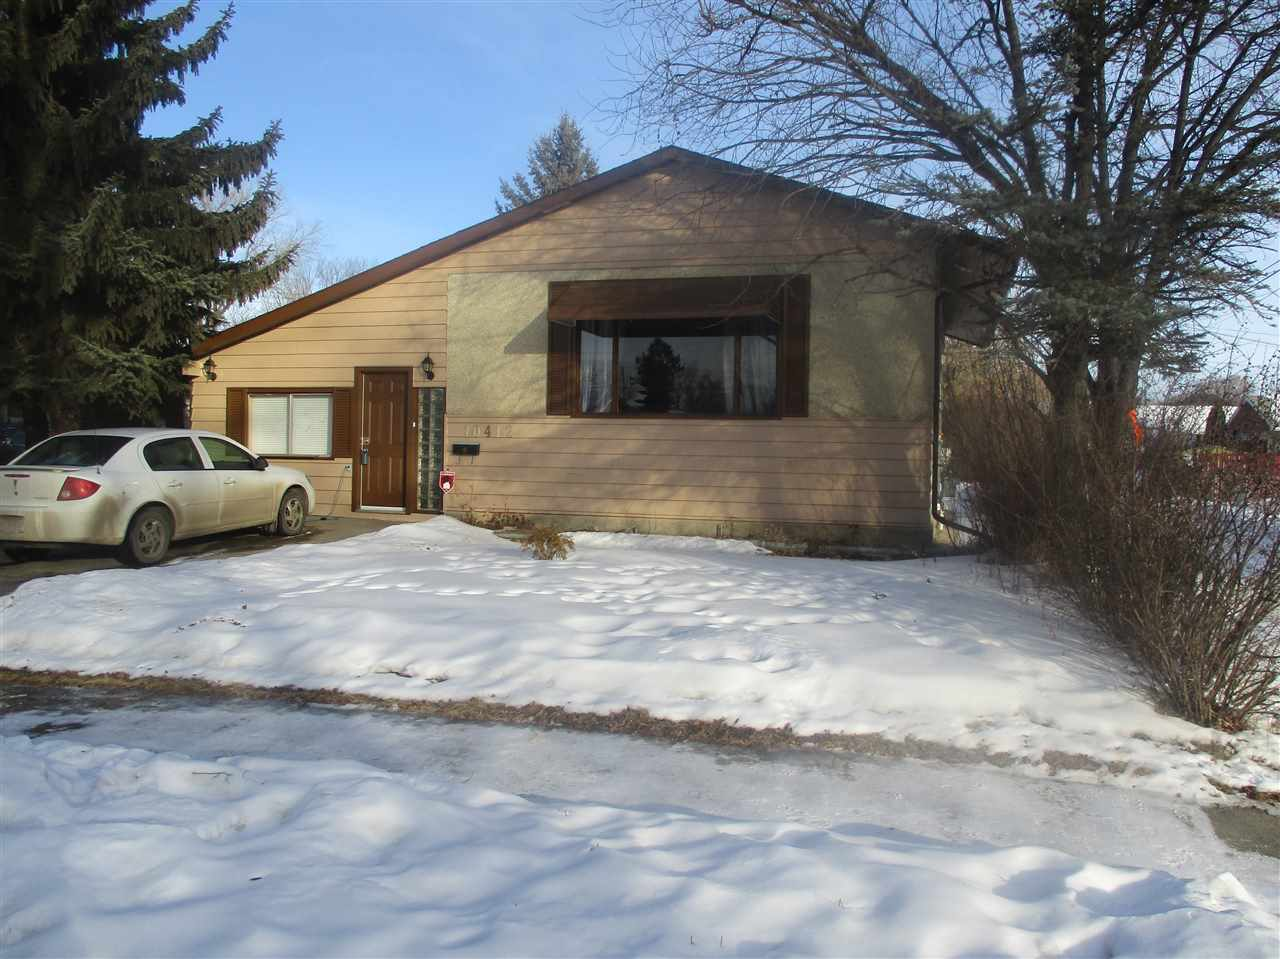 Main Photo: 10412 128 Avenue in Edmonton: Zone 01 House for sale : MLS® # E4051112